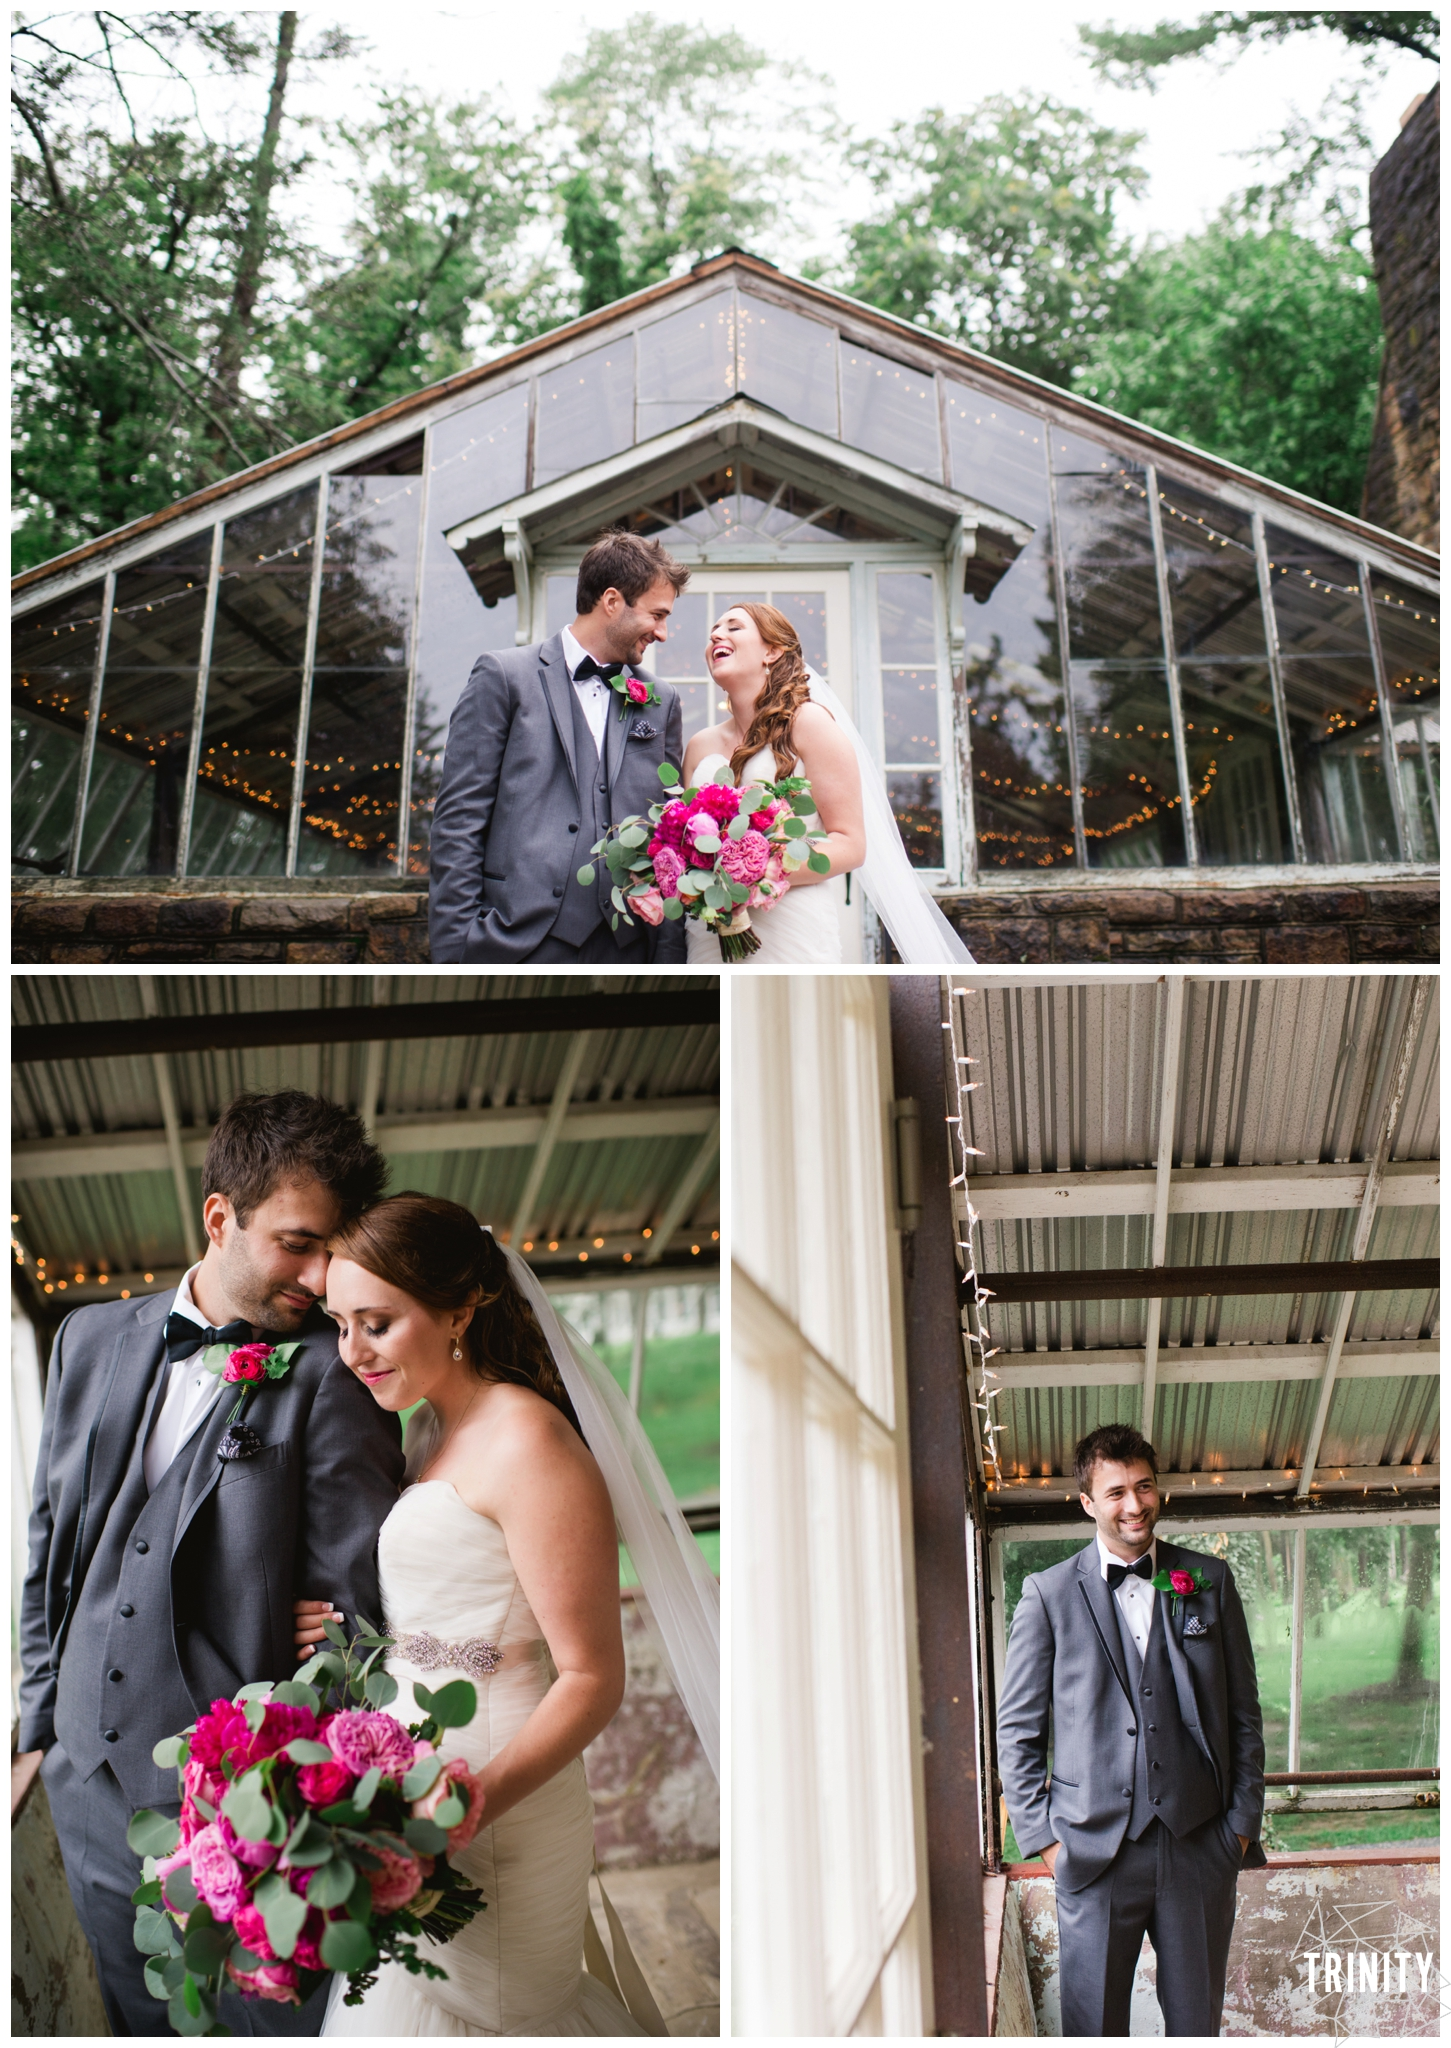 LANG-wedding-WEB-7245_WEBstomp.jpg